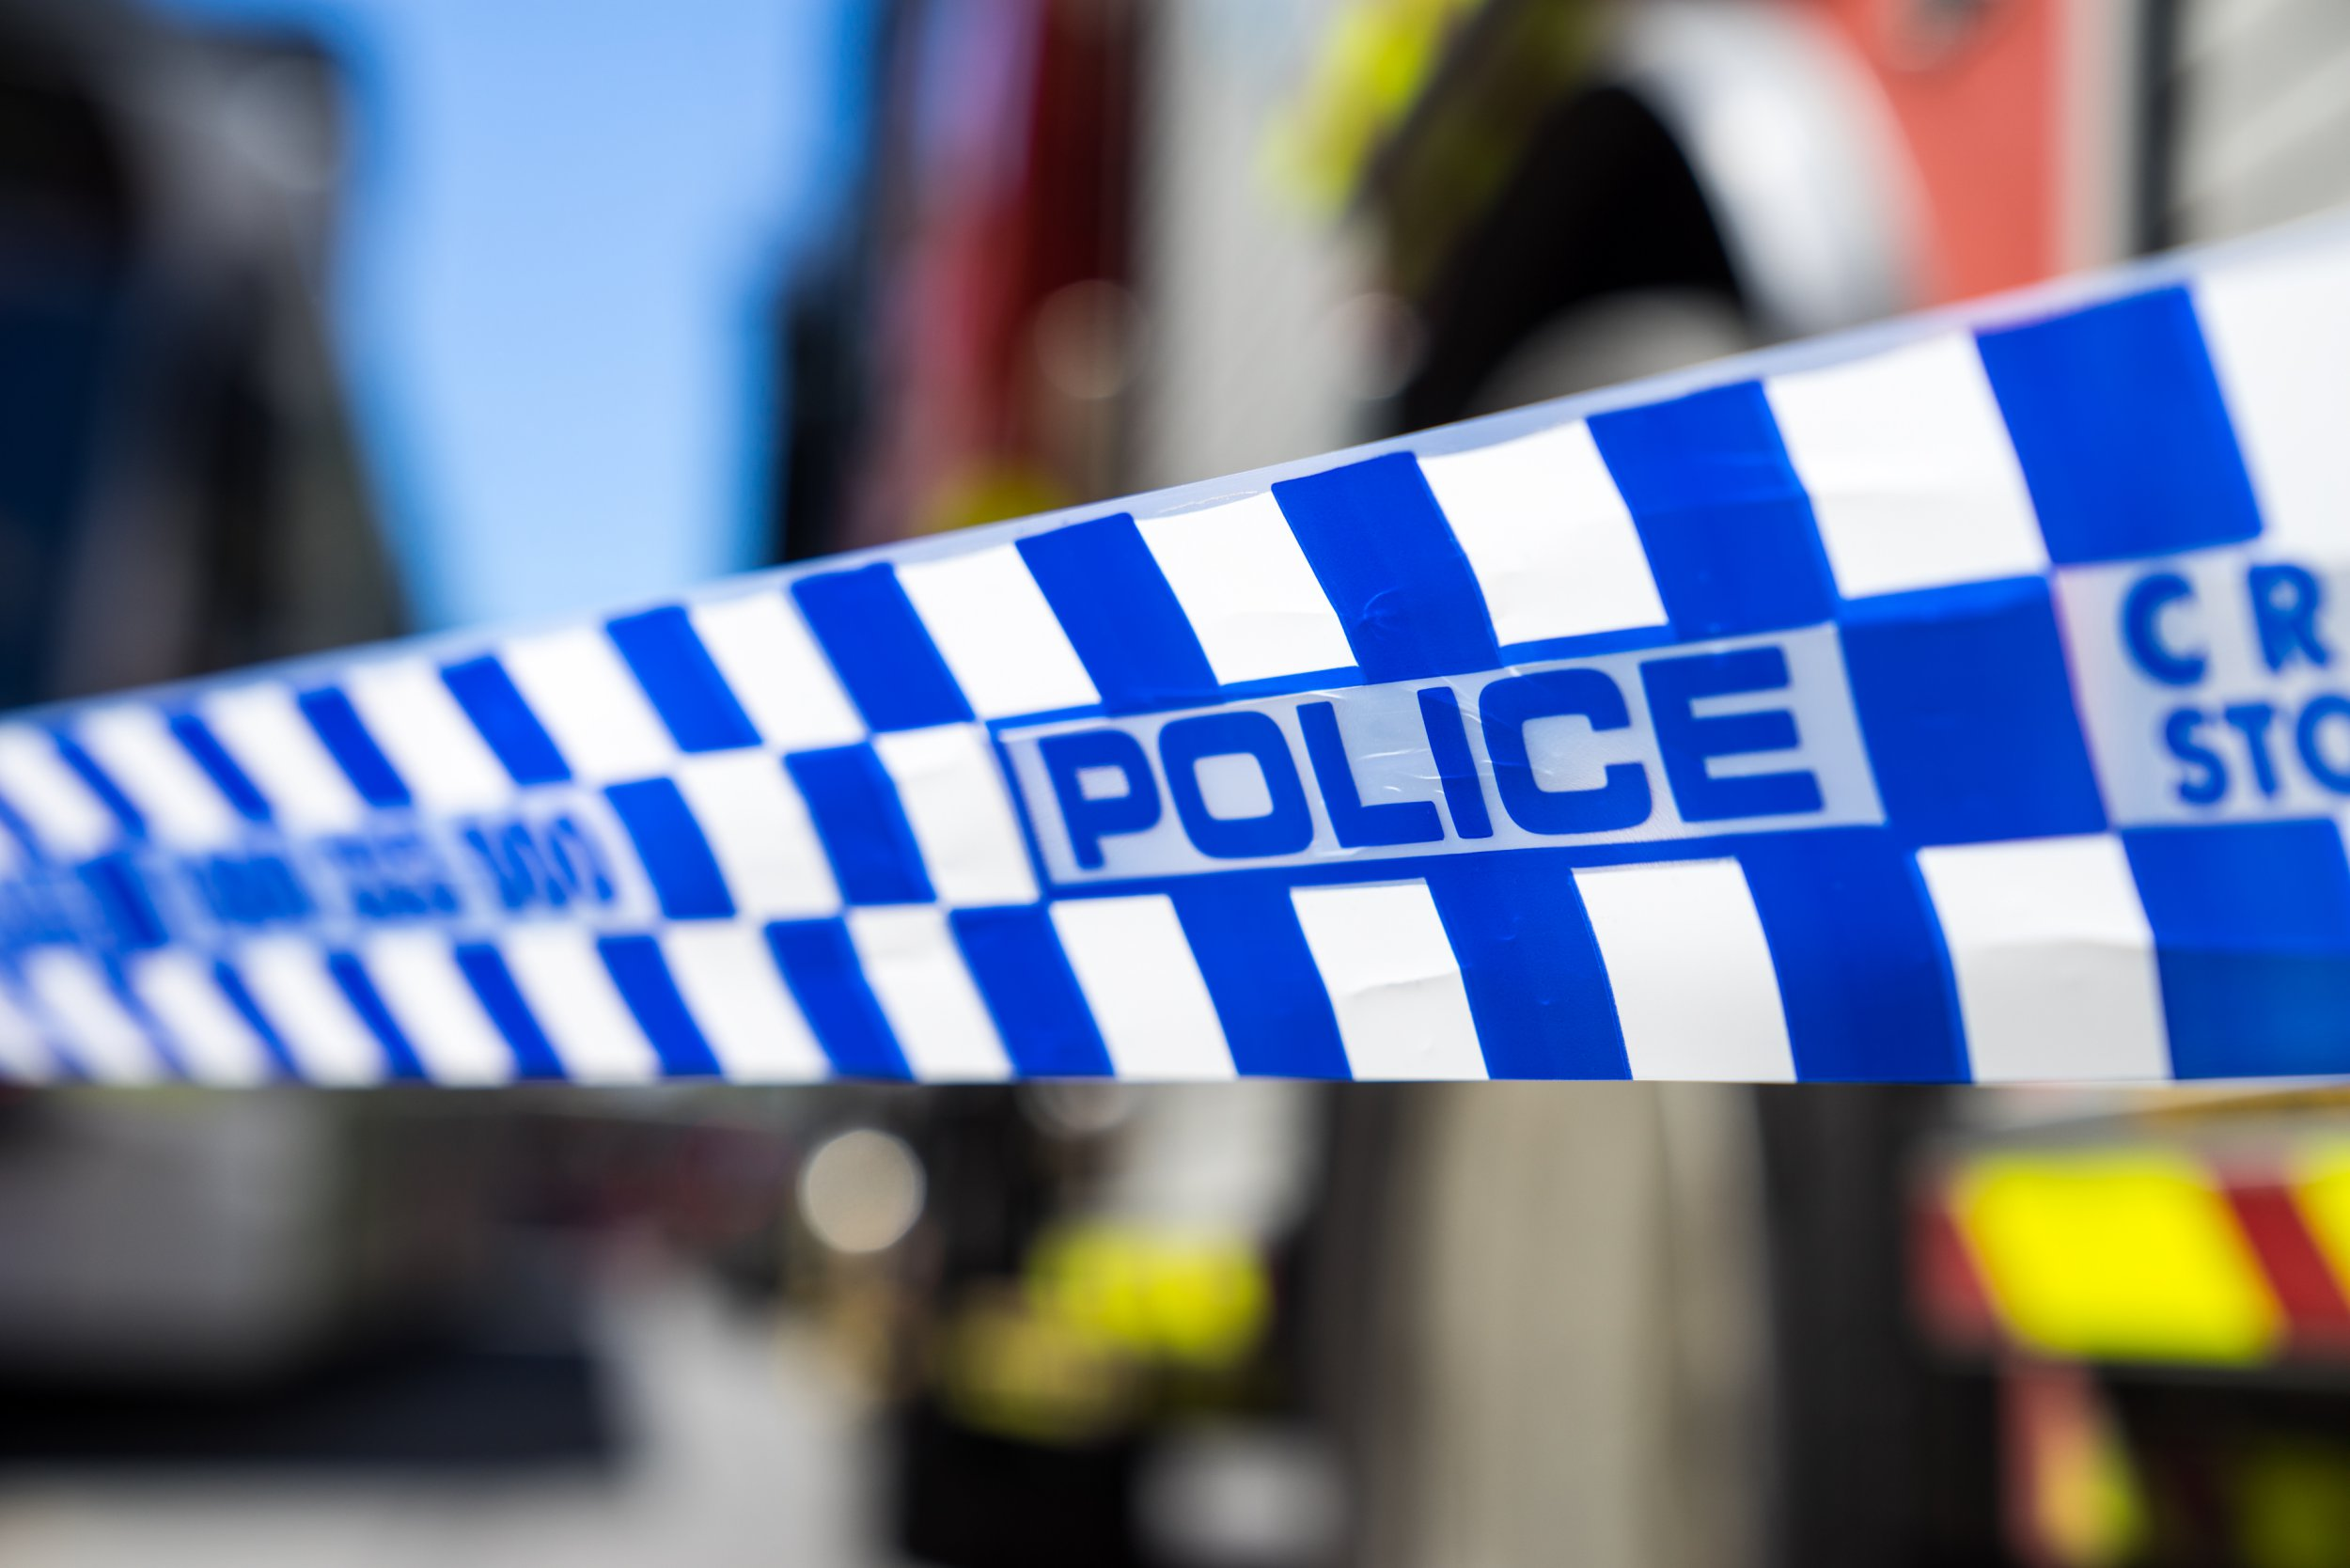 Woman seriously injured in 'horrific' sexual assault attack